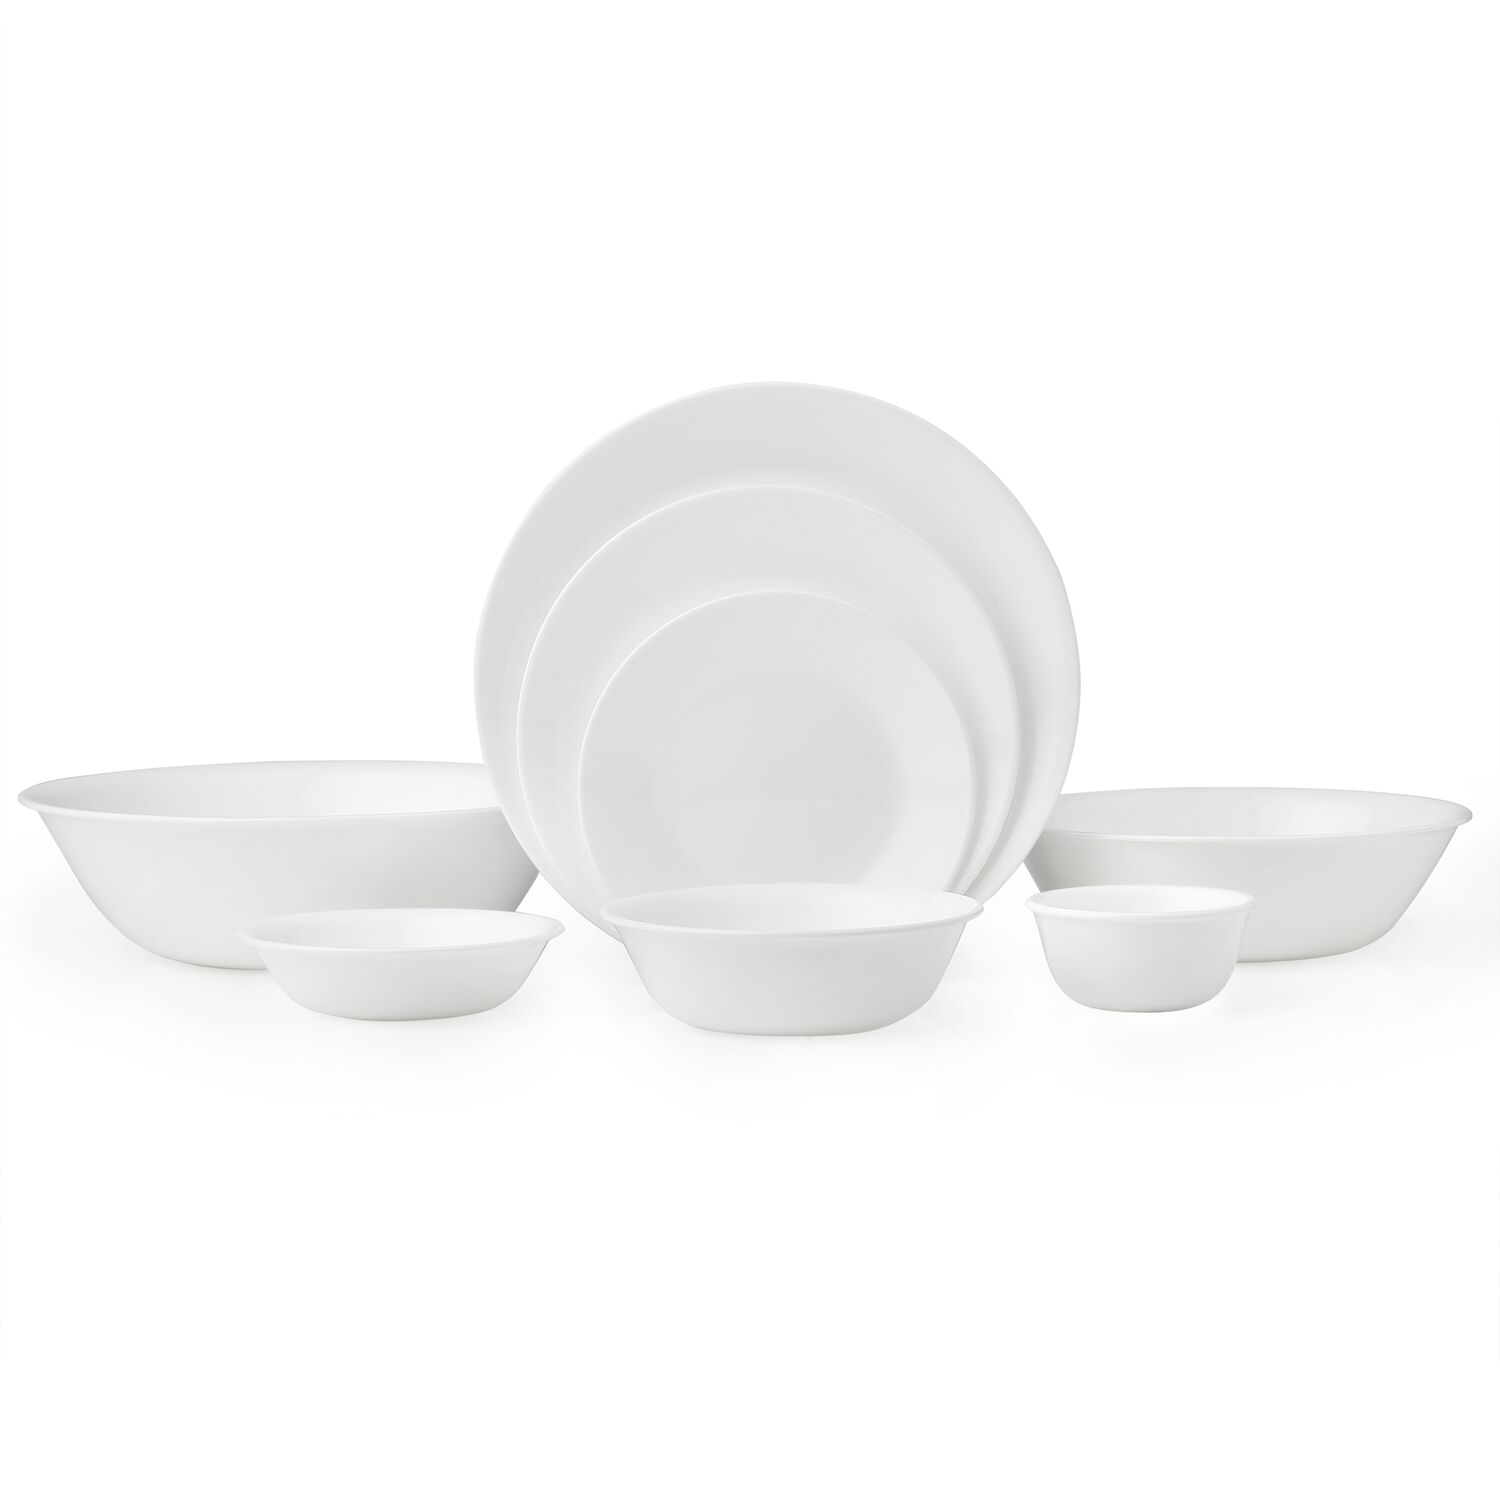 corelle pyrex corningware chicago cutlery official site livingware winter frost white 50 pc dinnerware set